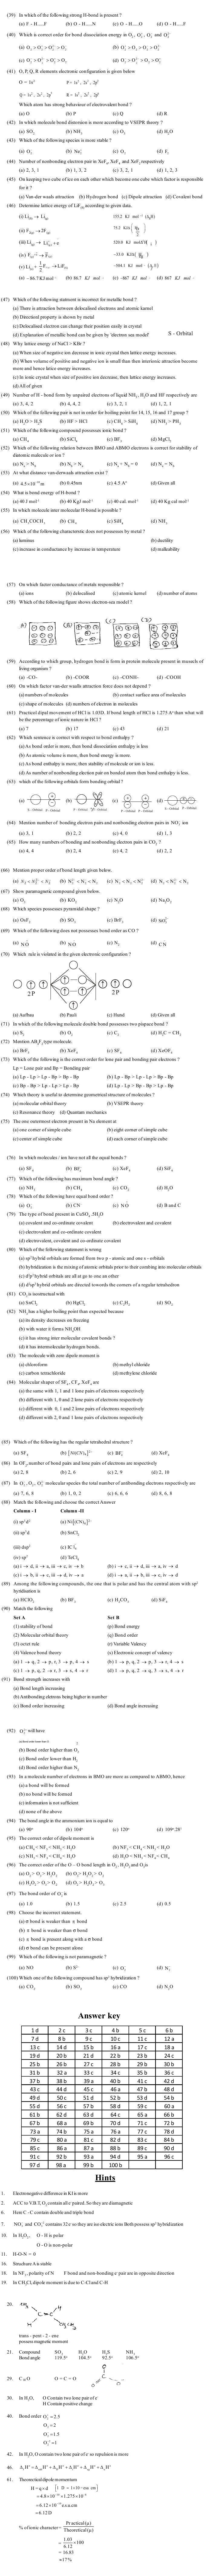 JEE and AIPMT Question Bank Chemistry - Chemical Bonding And Atomic Structure